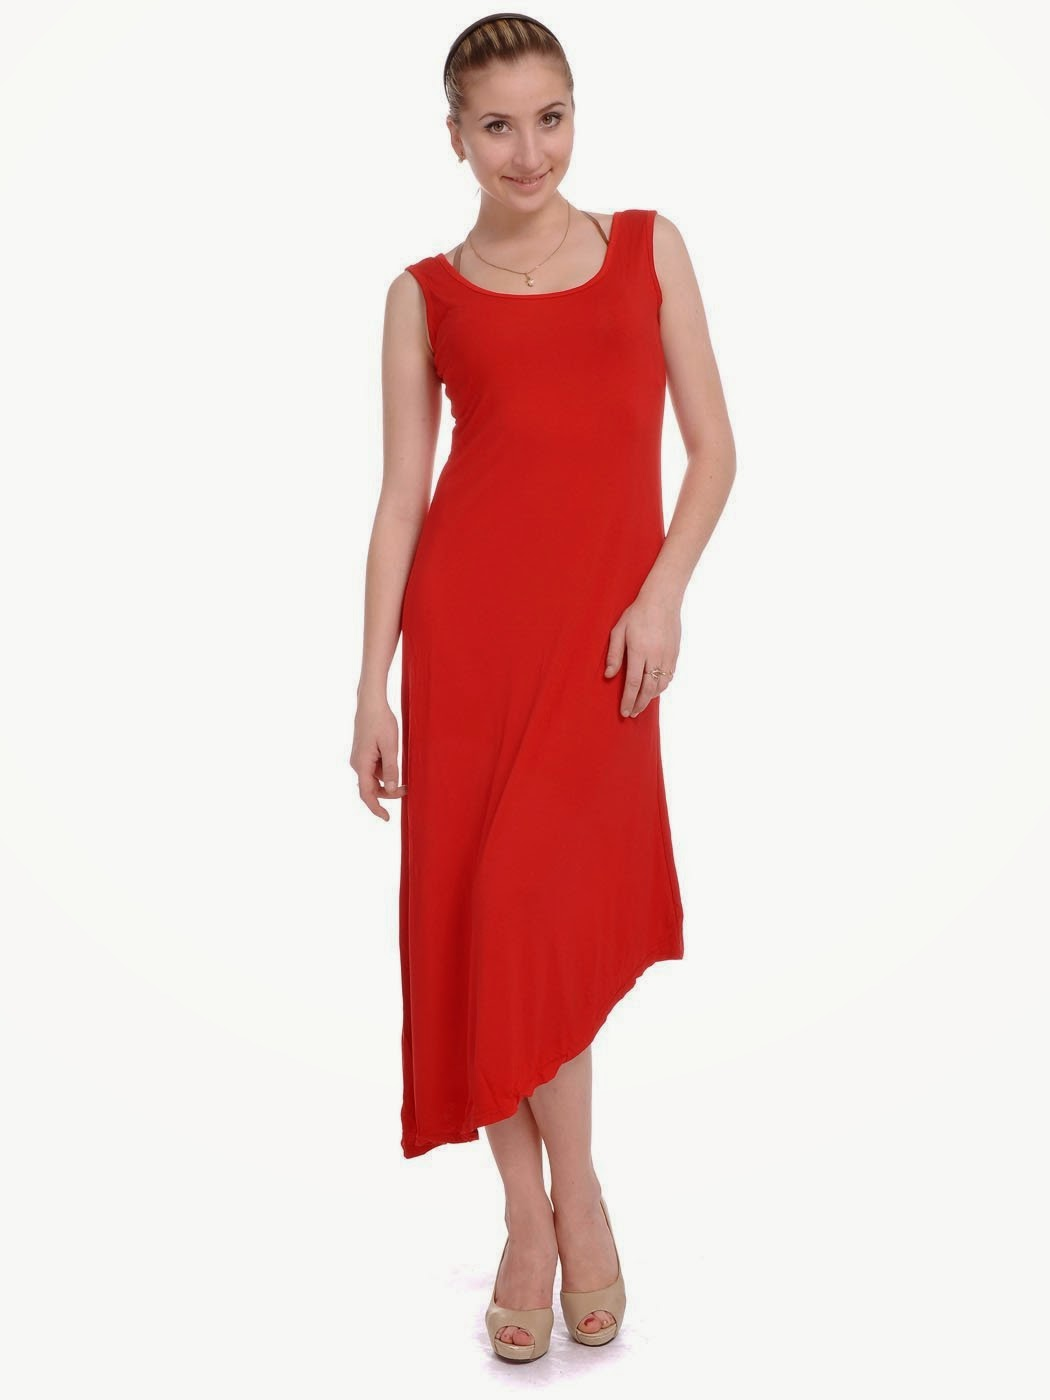 Cocktail Dresses 2014: Cute Red Asymmetrical Cocktail Dresses 2014